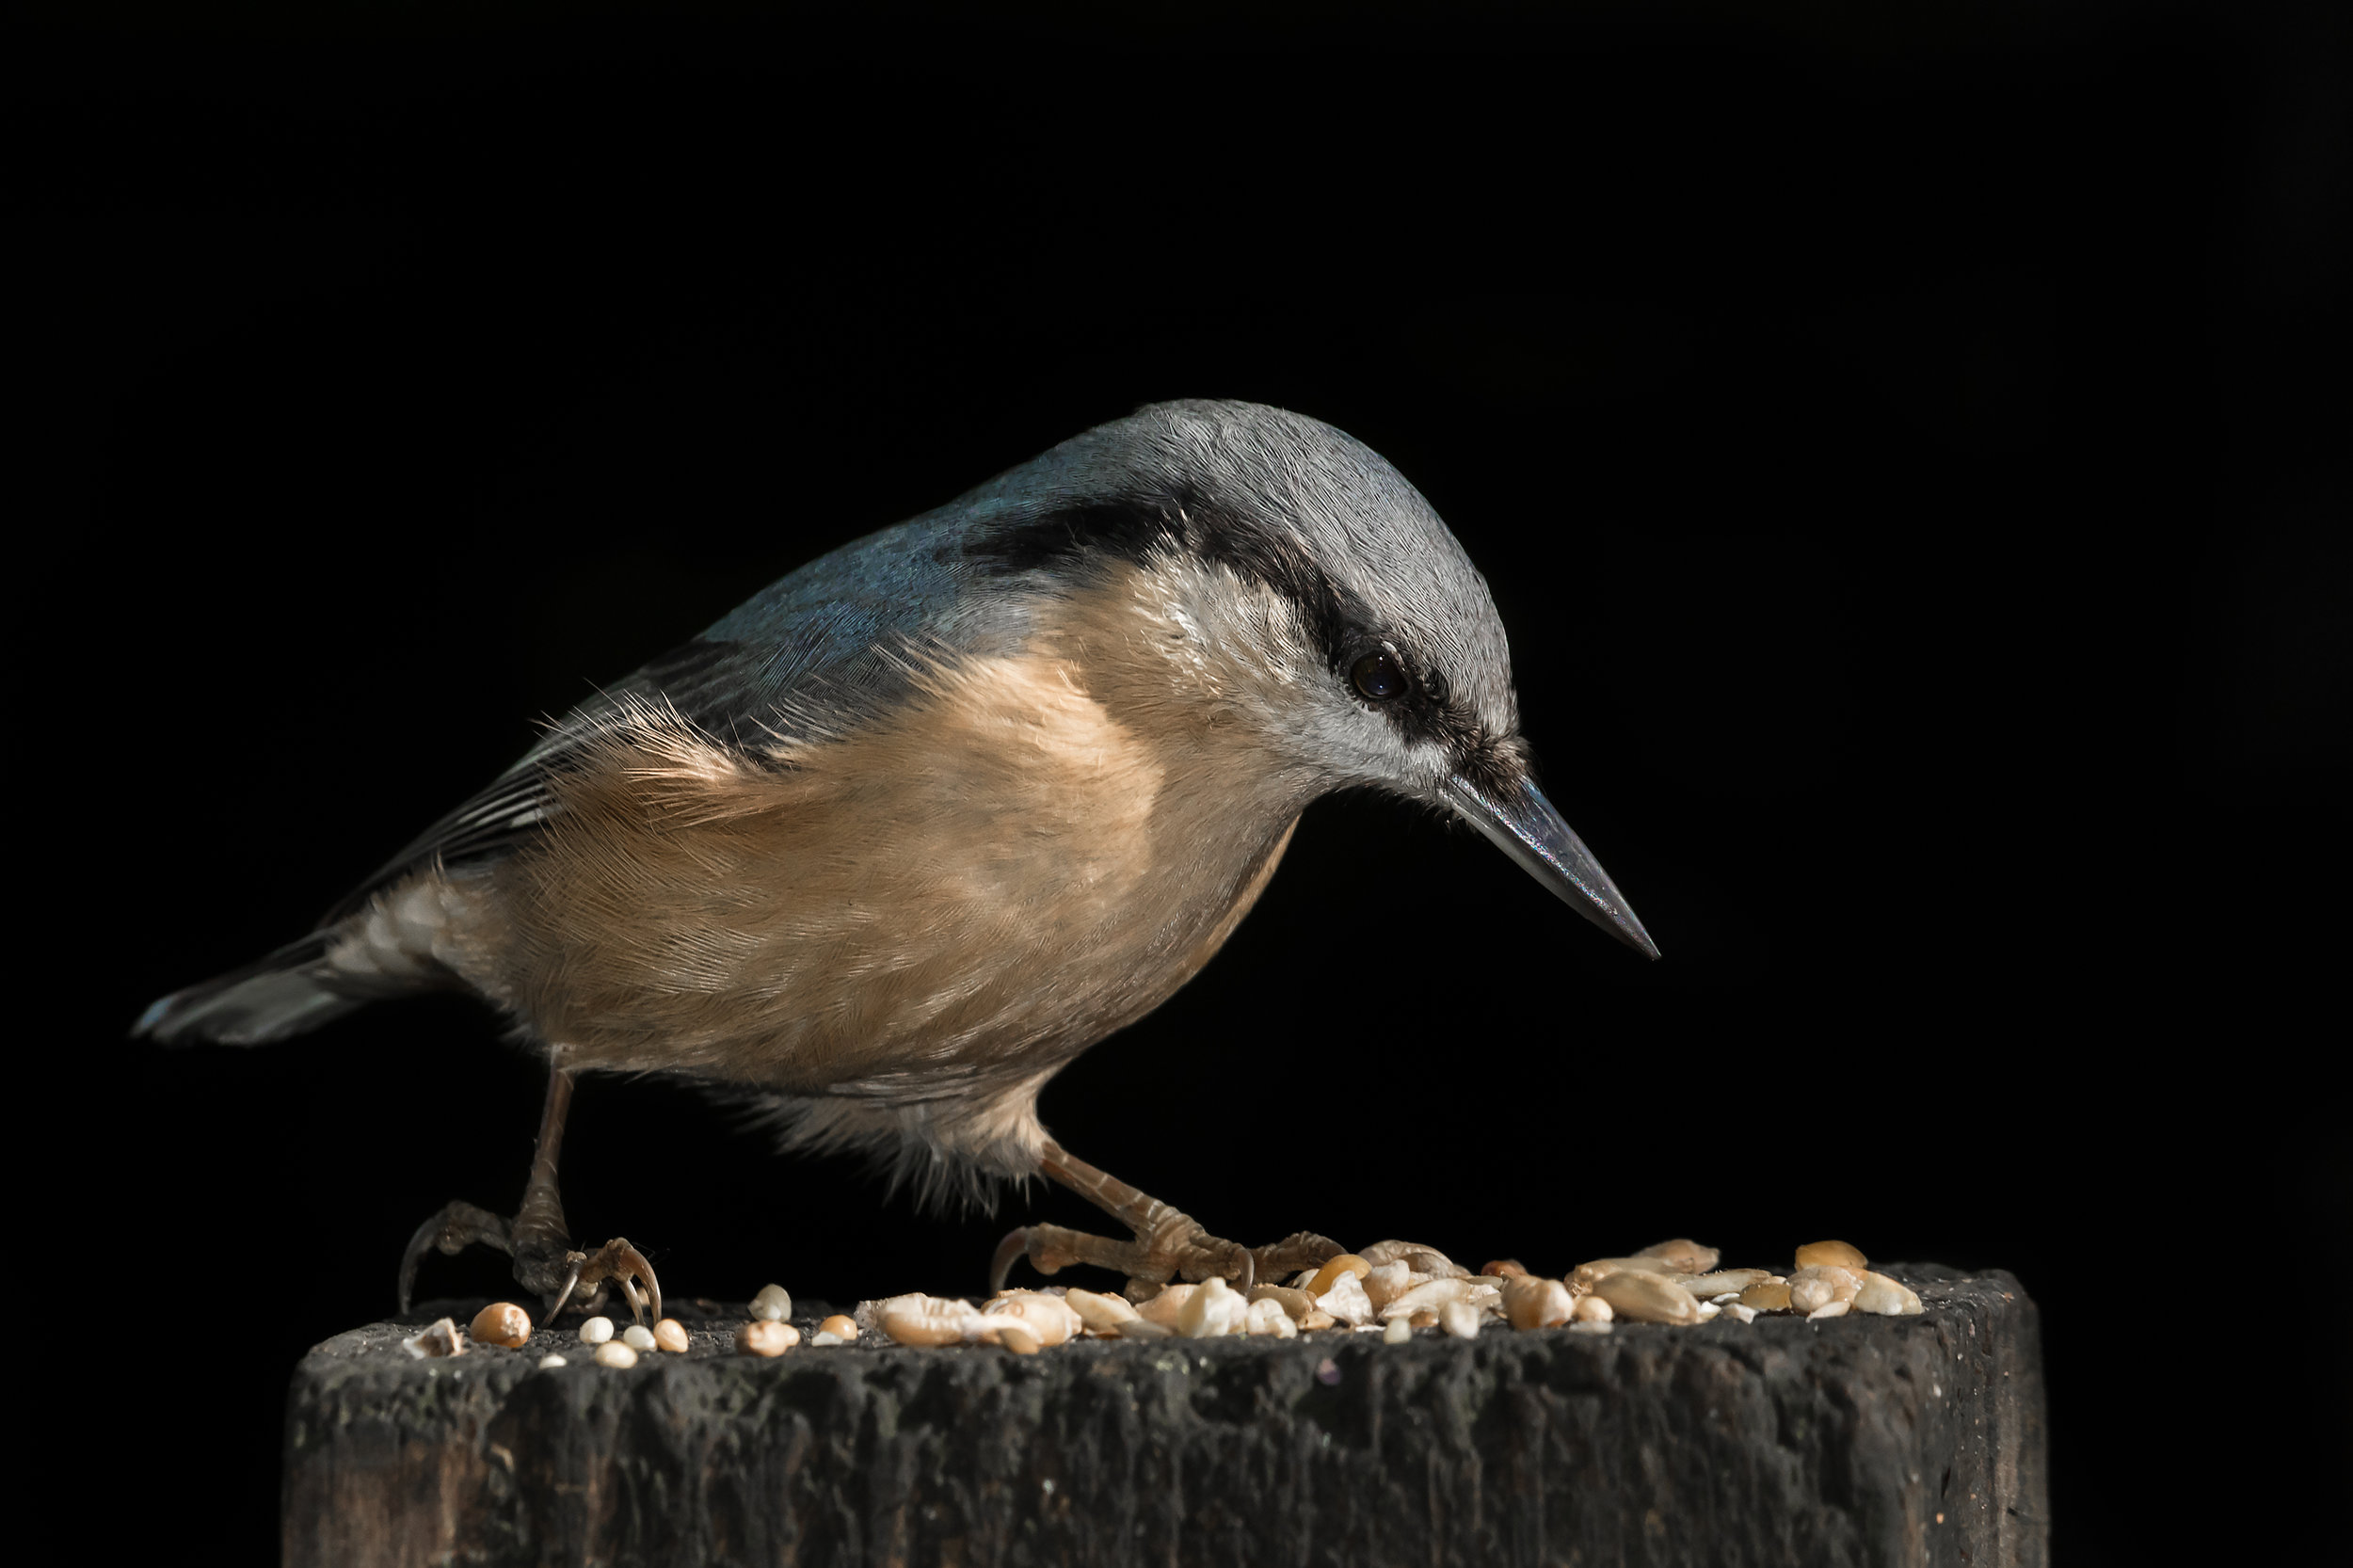 Nuthatch portrait #3